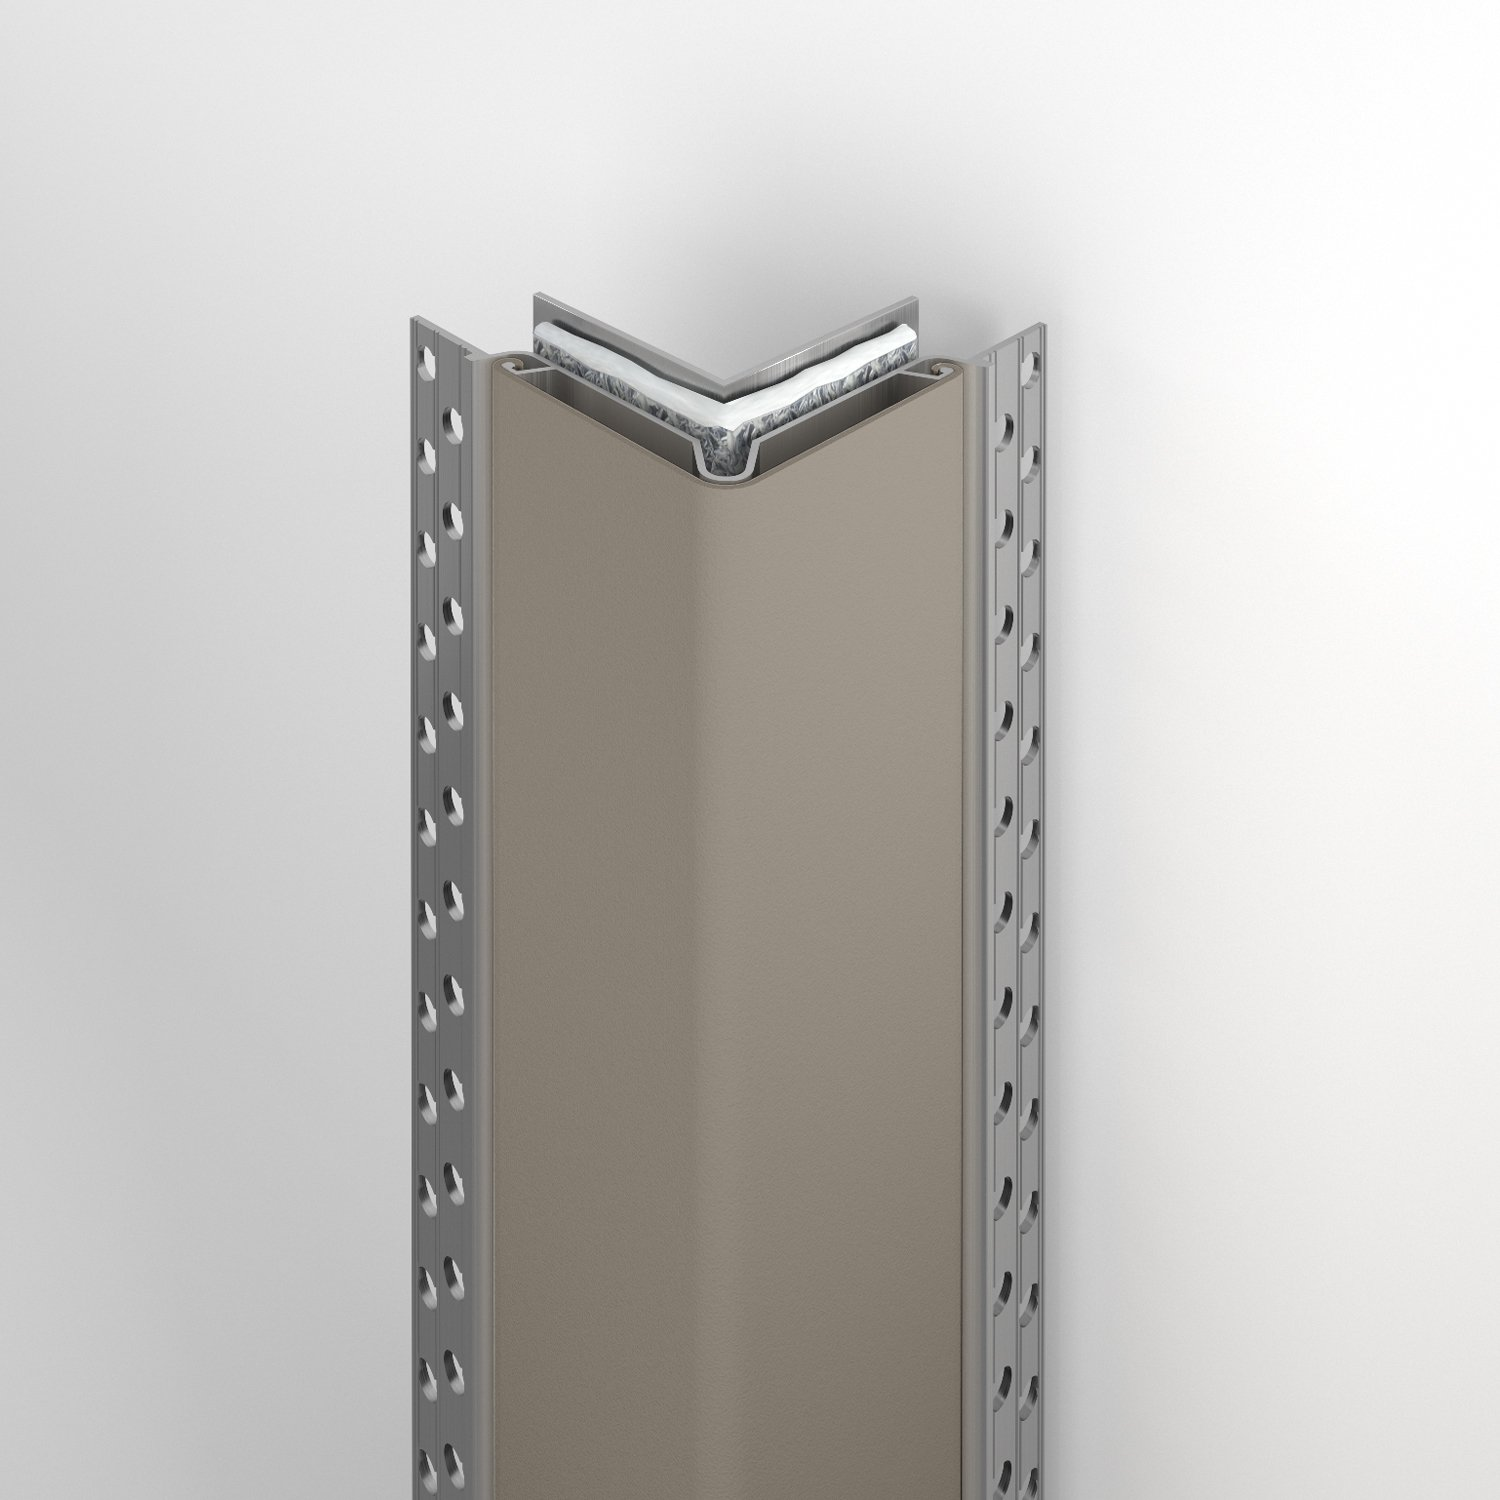 150FR fire rated corner guard in shiprock gray